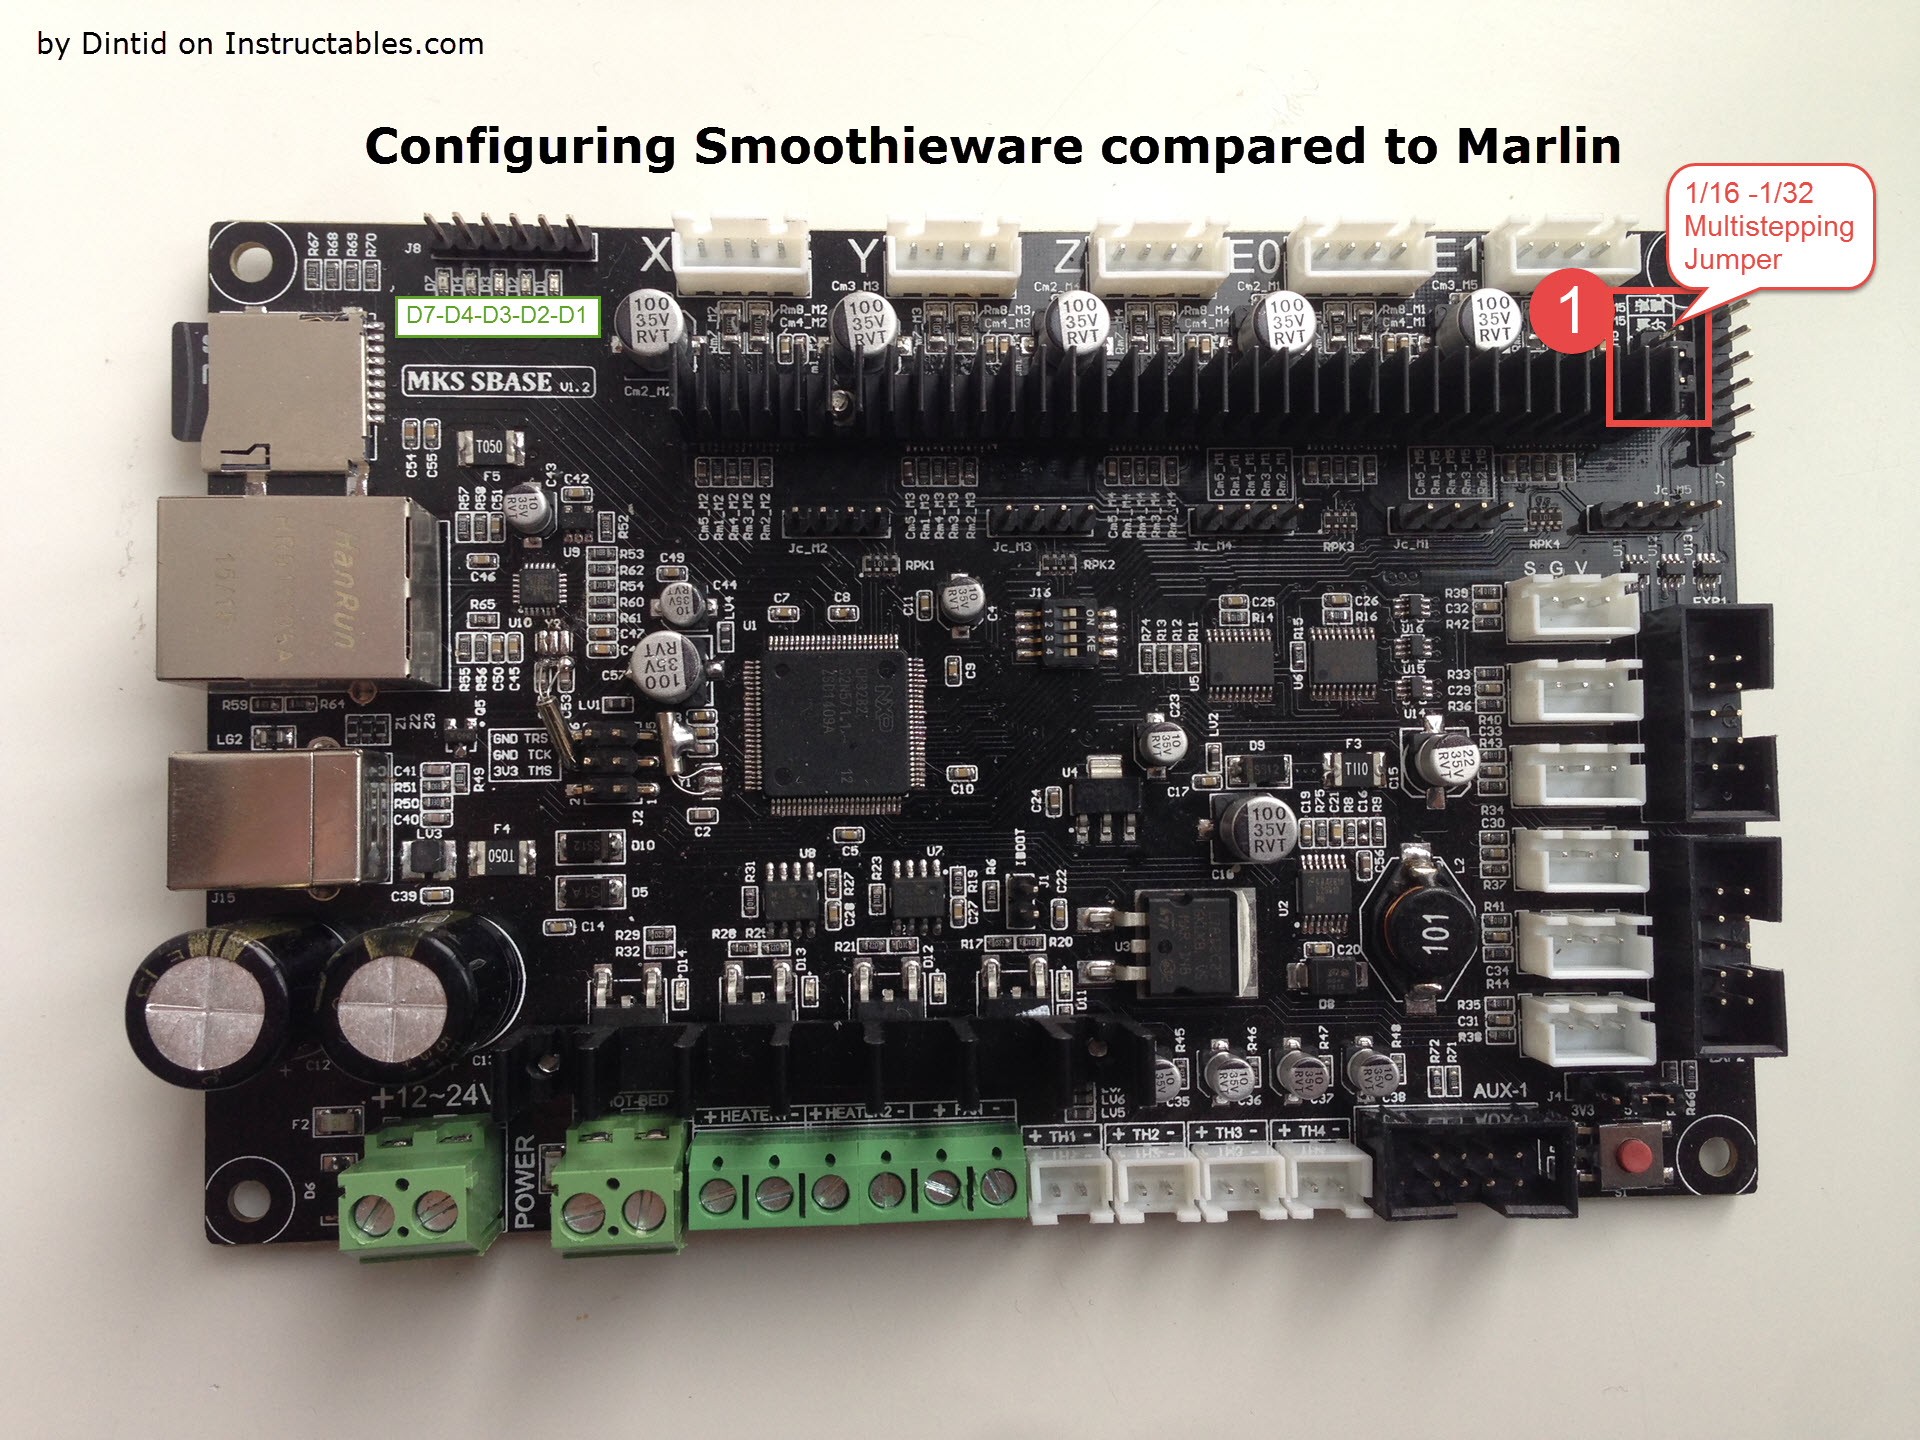 Smps Motherboard Connection Diagram - Somurich.com